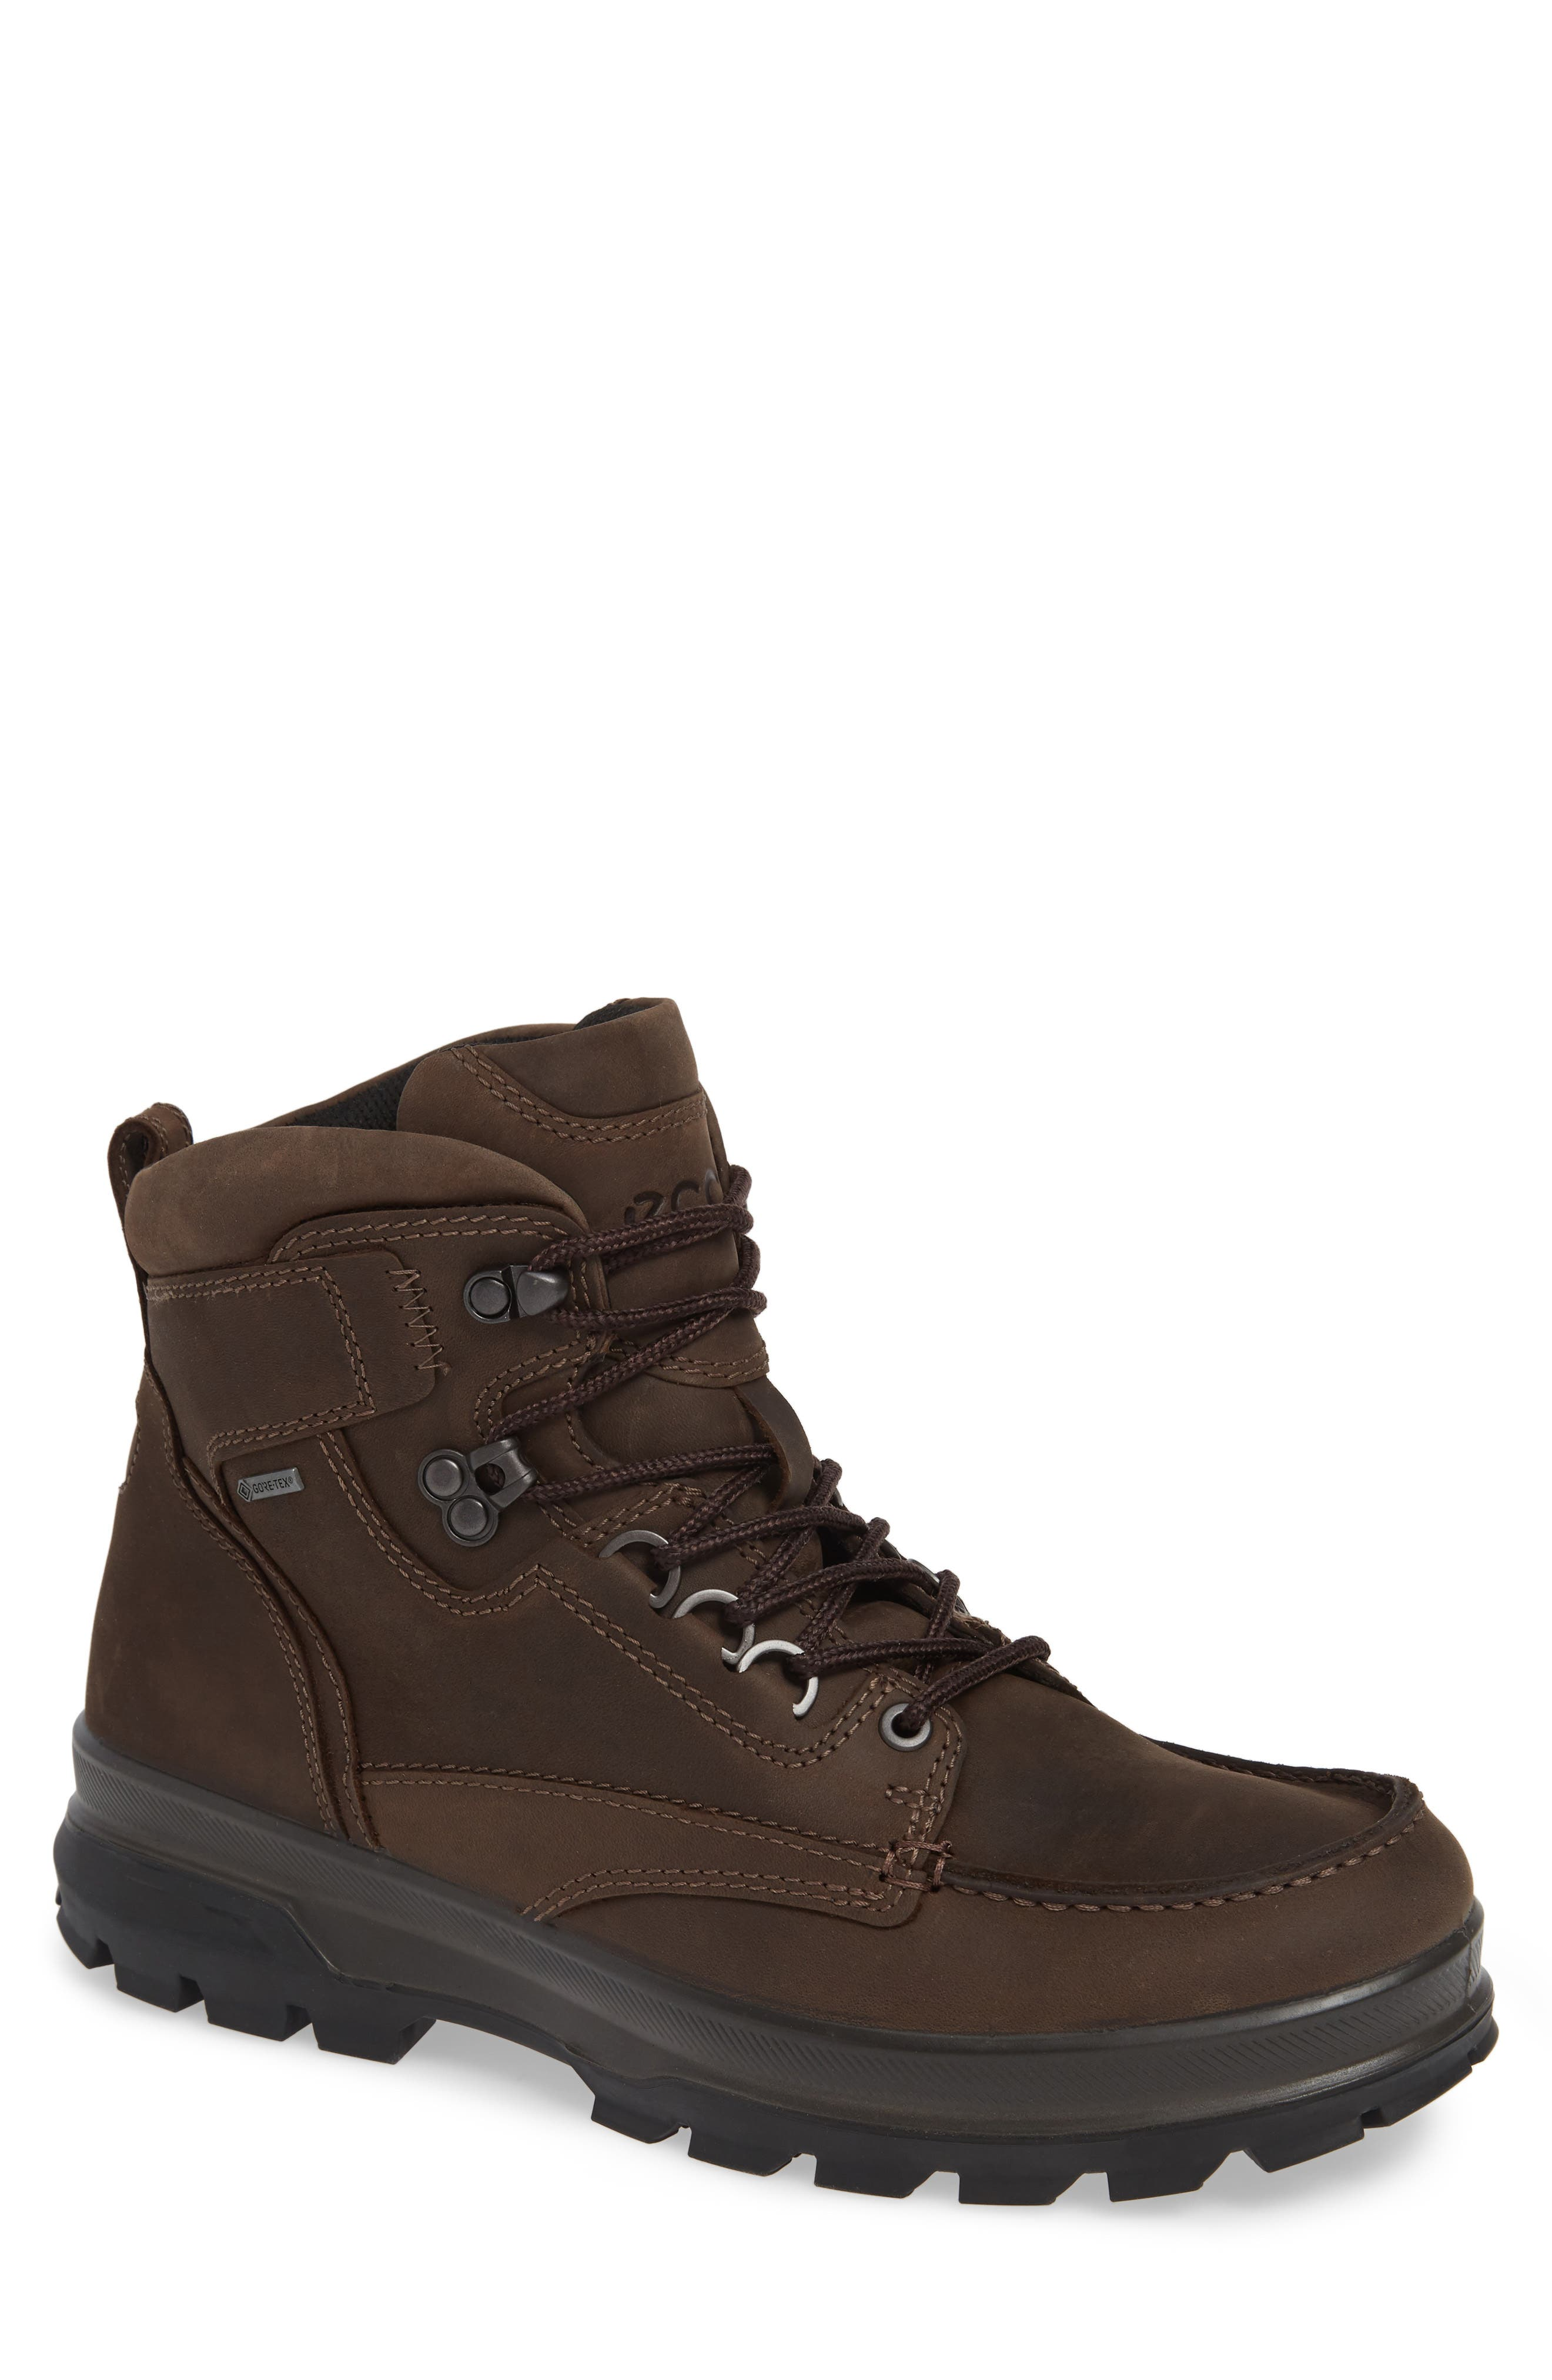 ECCO Rugged Track Gore-Tex<sup>®</sup> Waterproof Boot, Main, color, 217